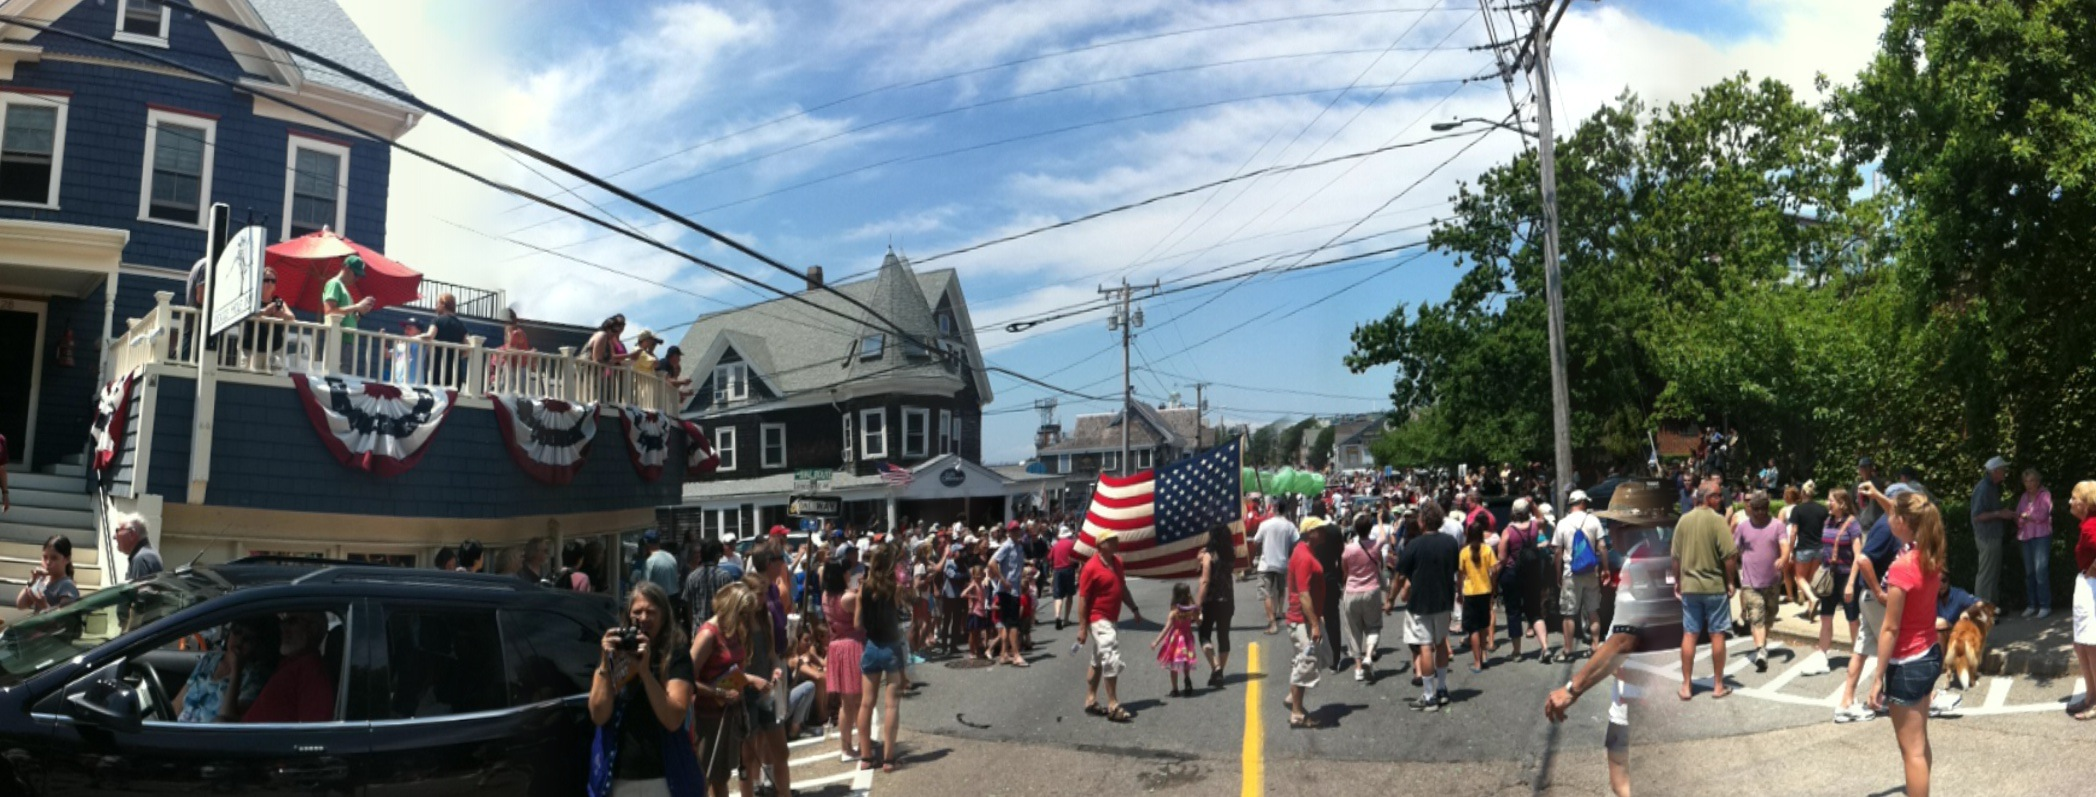 Greatest parade on Cape Cod.